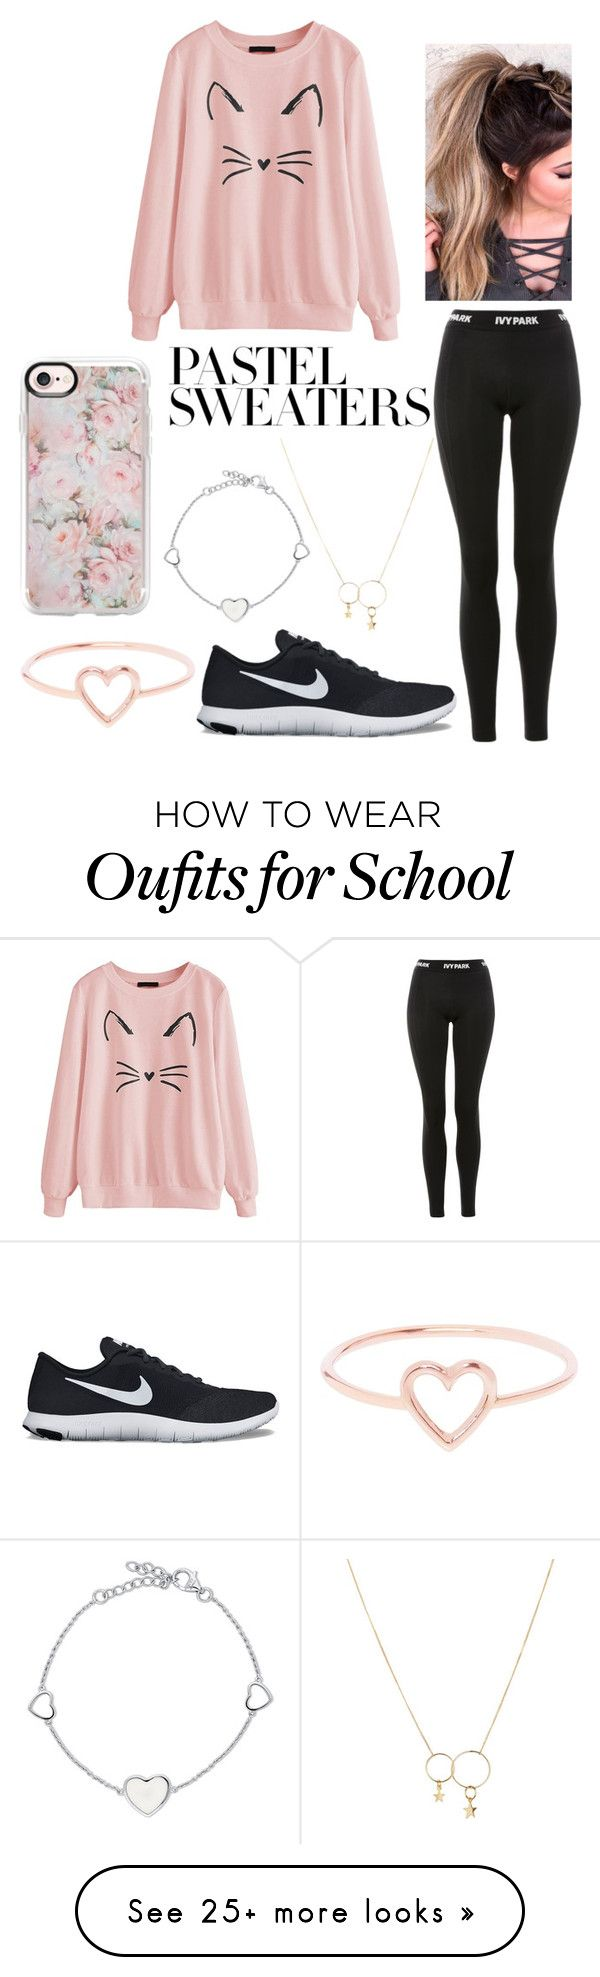 """""""Pastel Sweaters contest #2"""" by mina-lisha on Polyvore featuring Topshop, Casetify, NIKE, Zimmermann, Love Is and BERRICLE"""